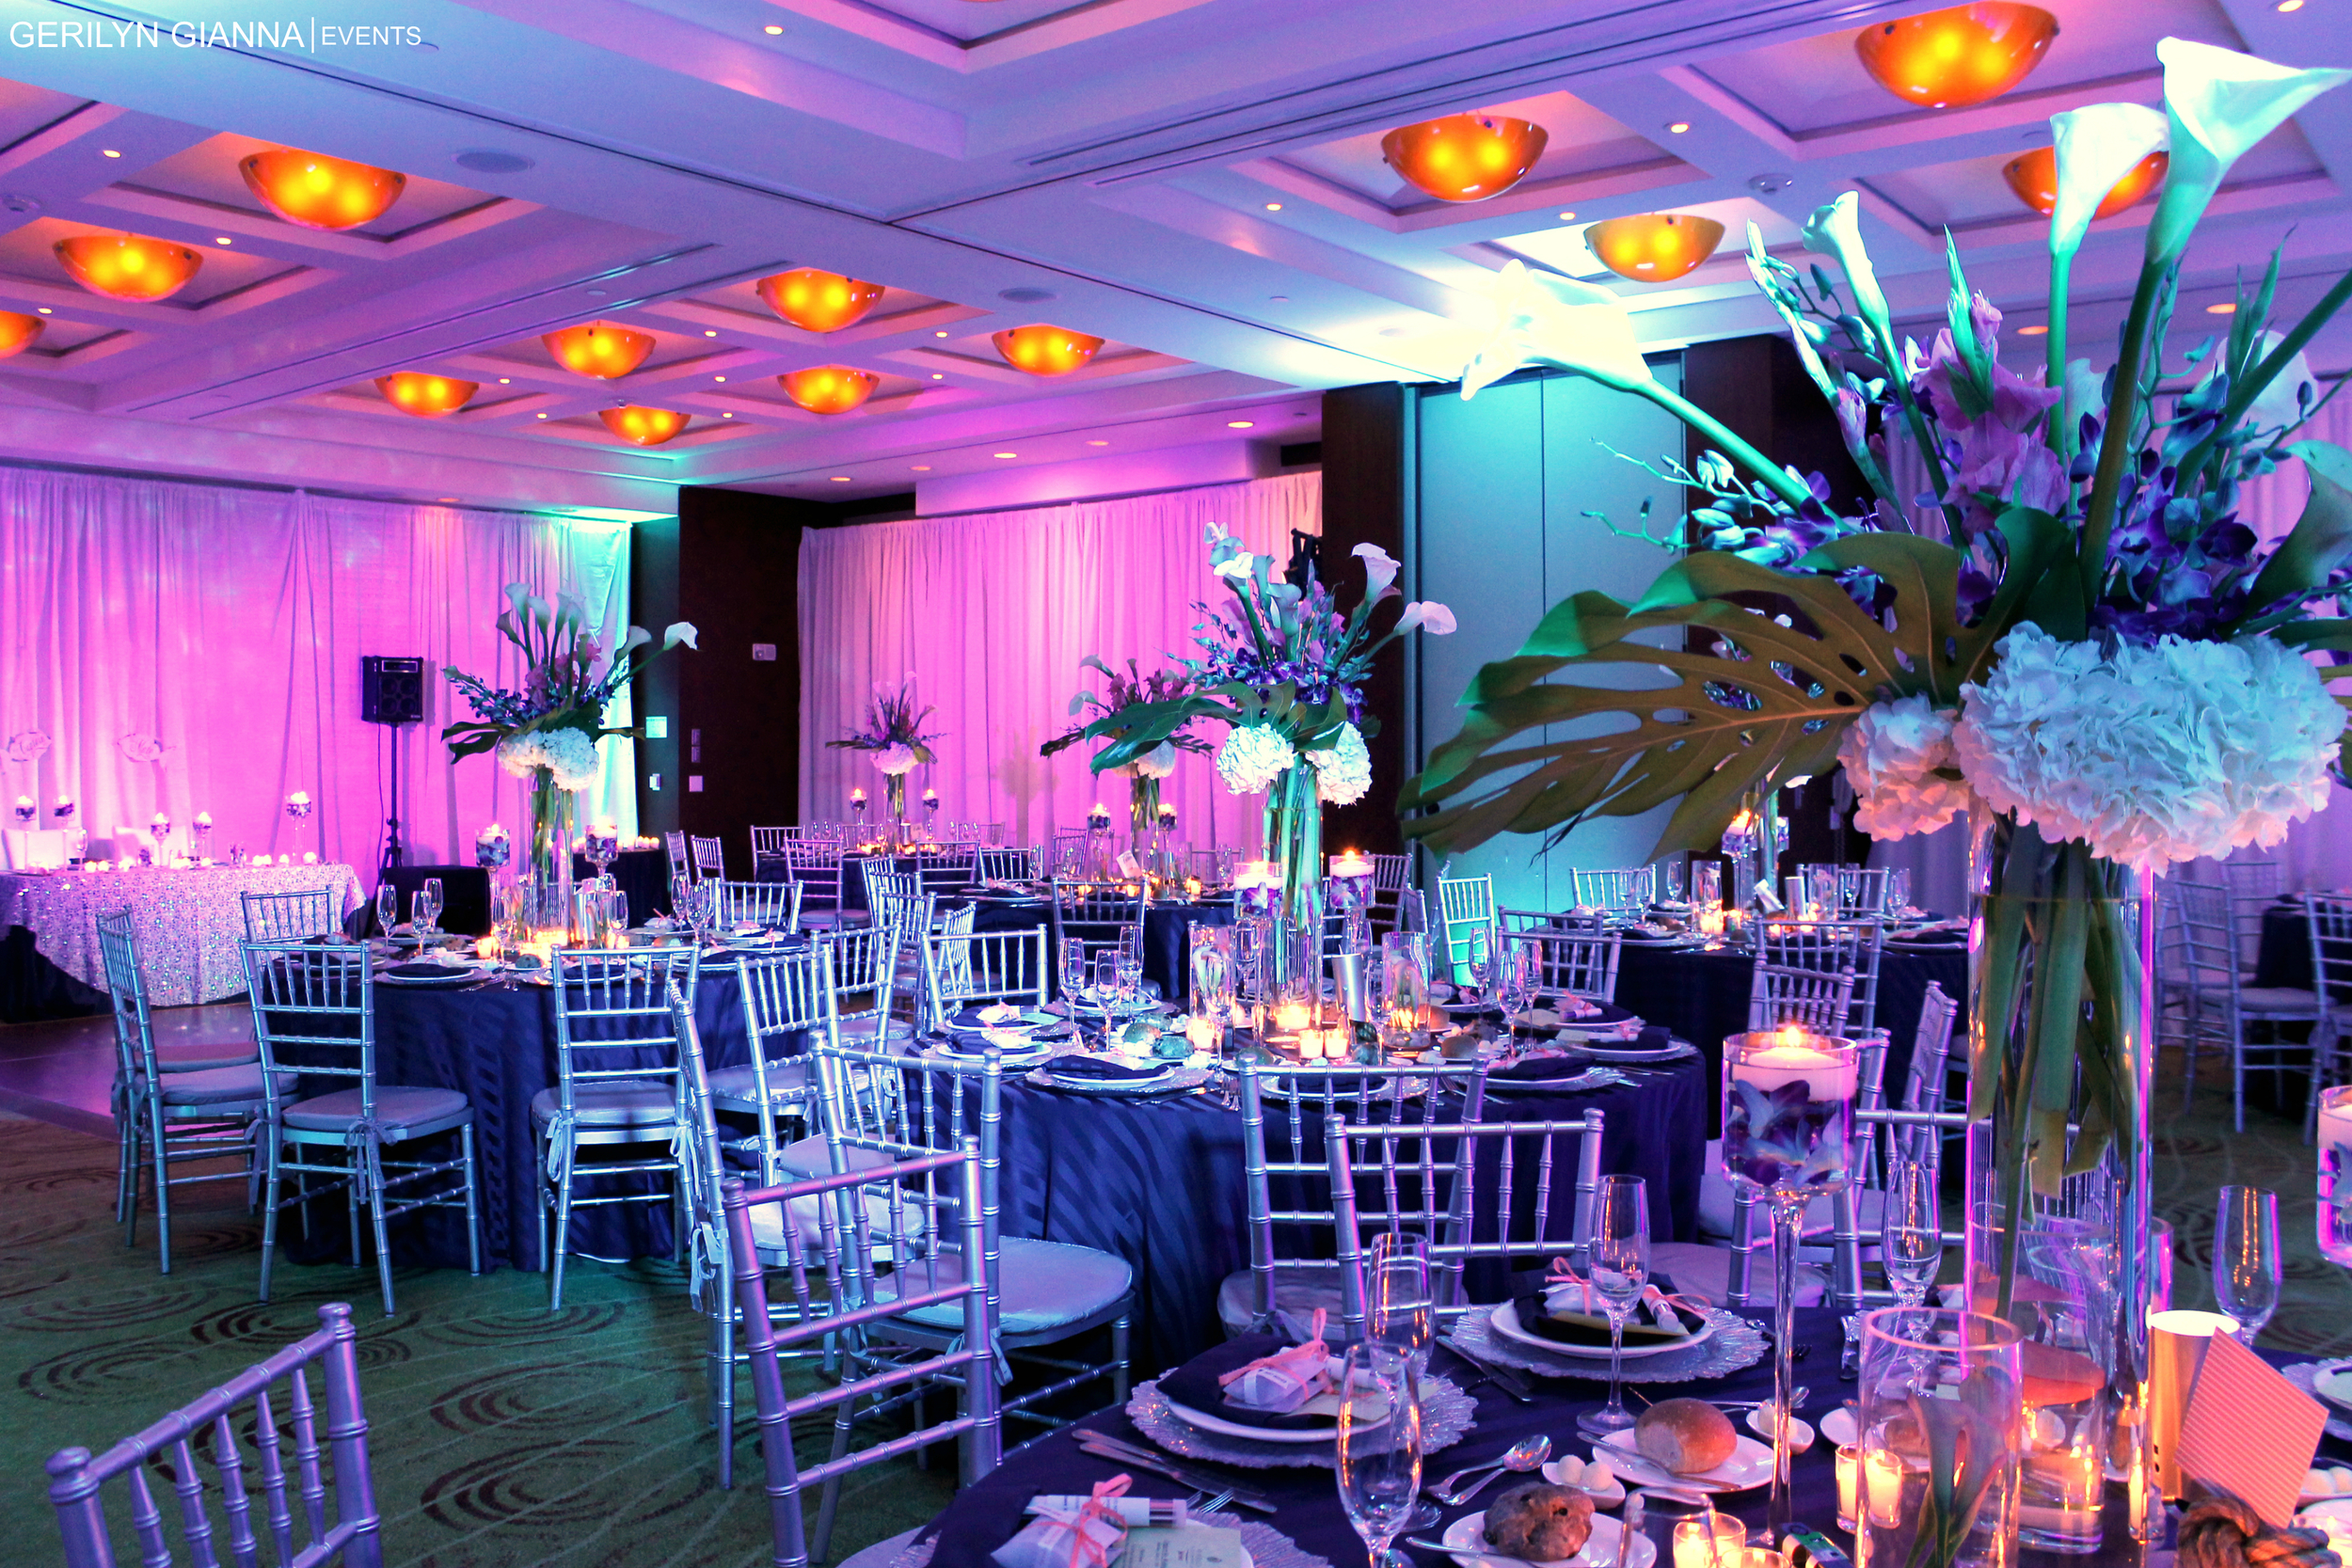 Marriott Singer Island Resort Wedding | Singer Island Florida Event Decor Lighting